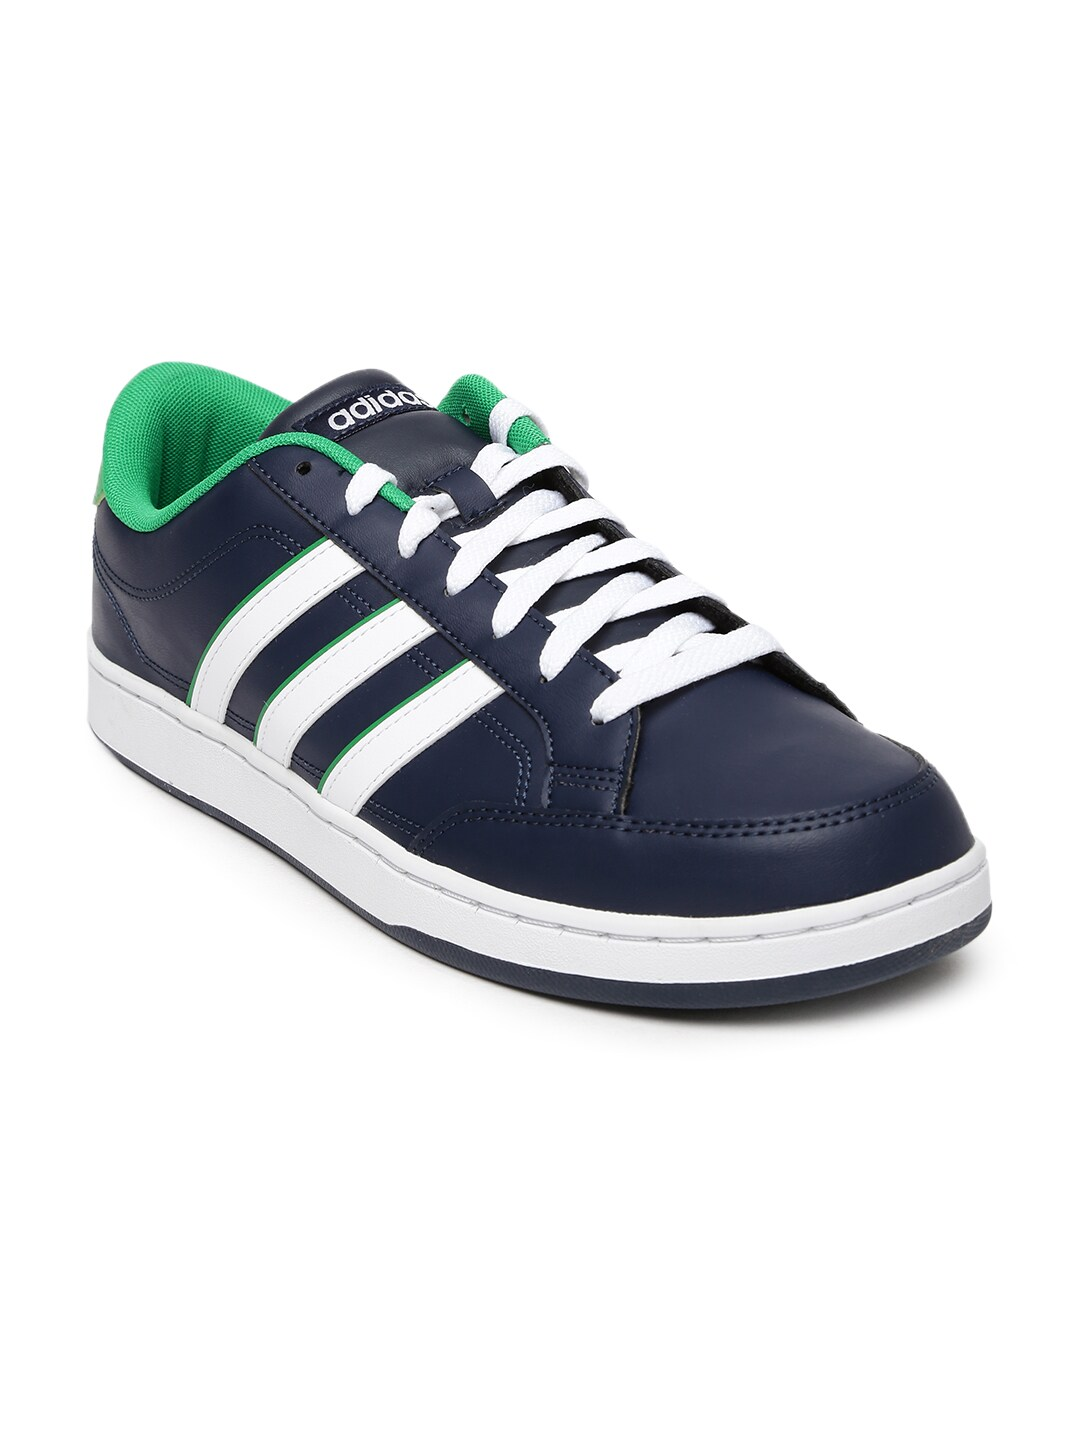 6f3a1558884a Adidas neo aw4622 Men Navy Courtset Sneakers - Best Price in India ...